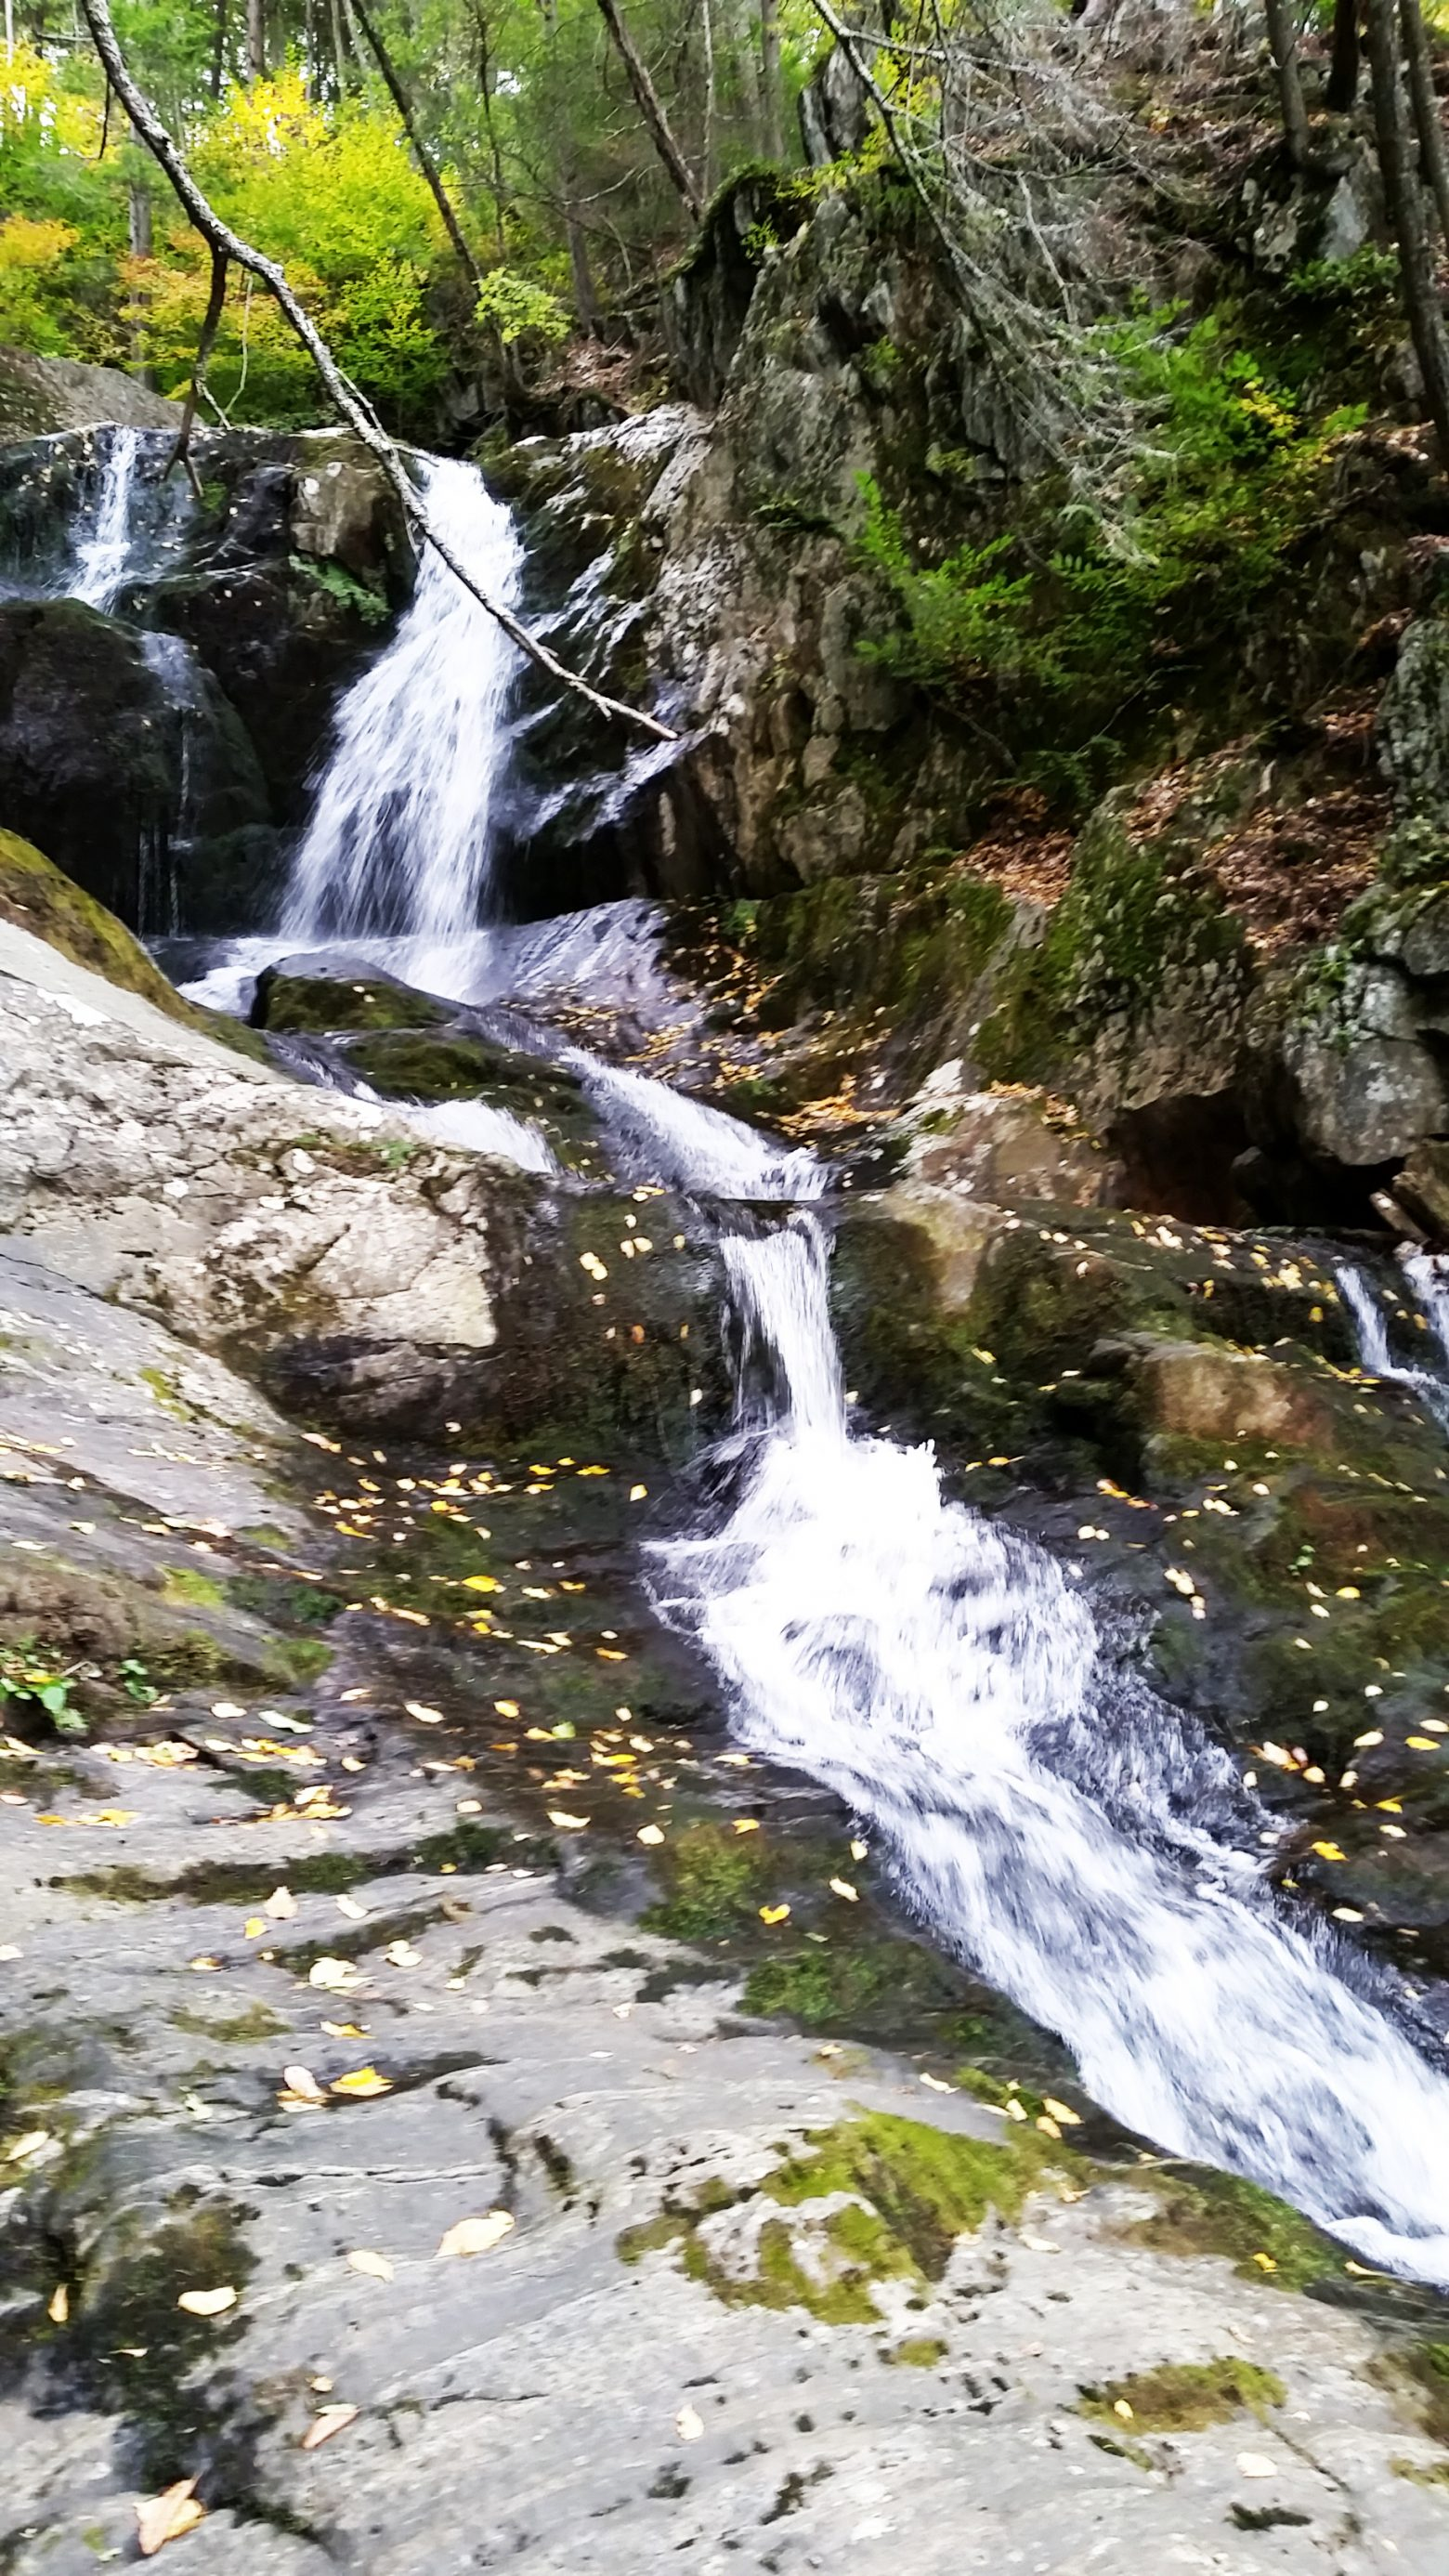 2015-10-02 Sanderson Brook Falls Mass 35 for CPD